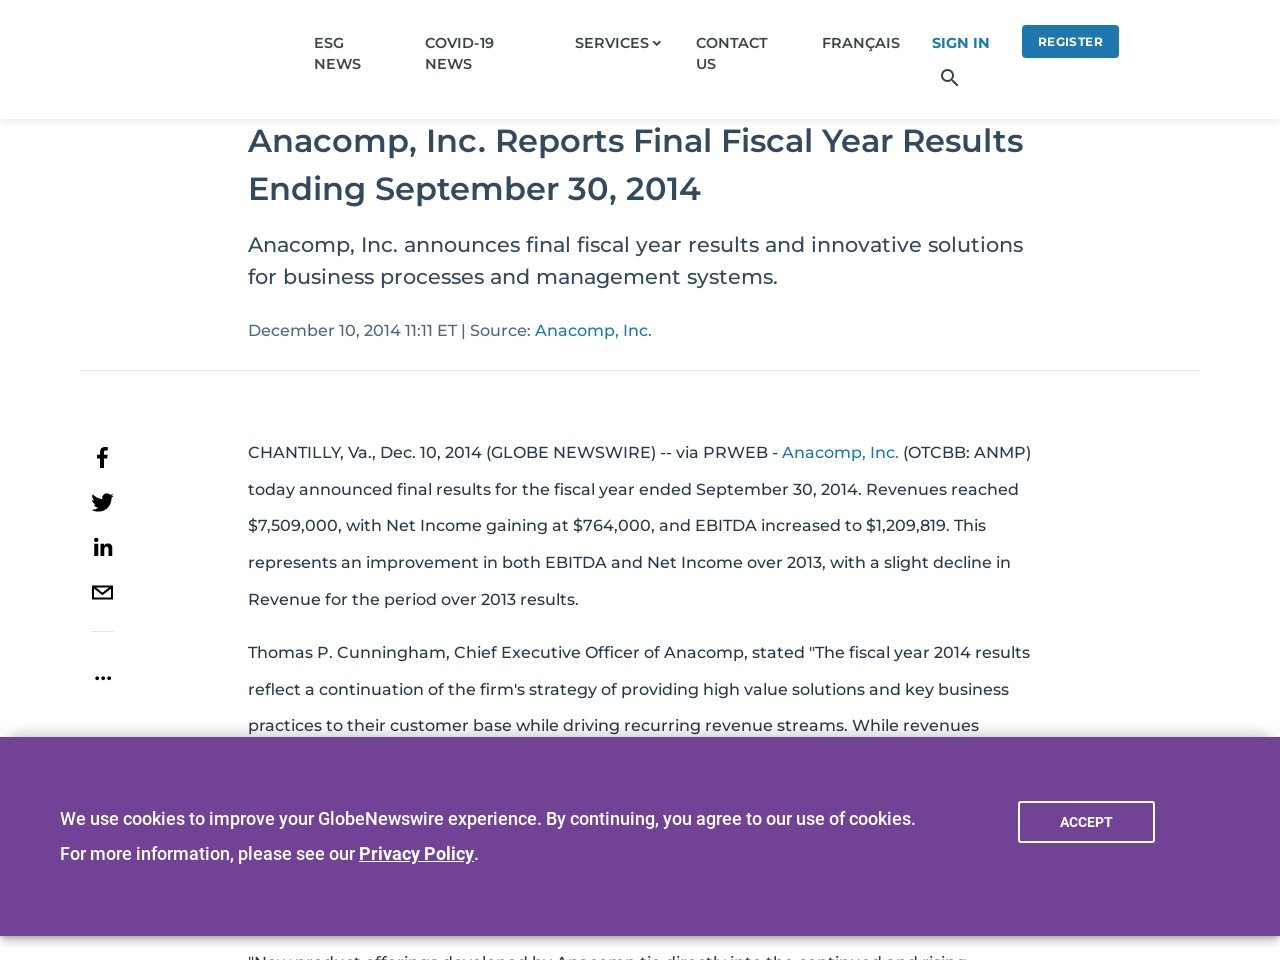 Anacomp, Inc. Reports Final Fiscal Year Results Ending September 30, 2014